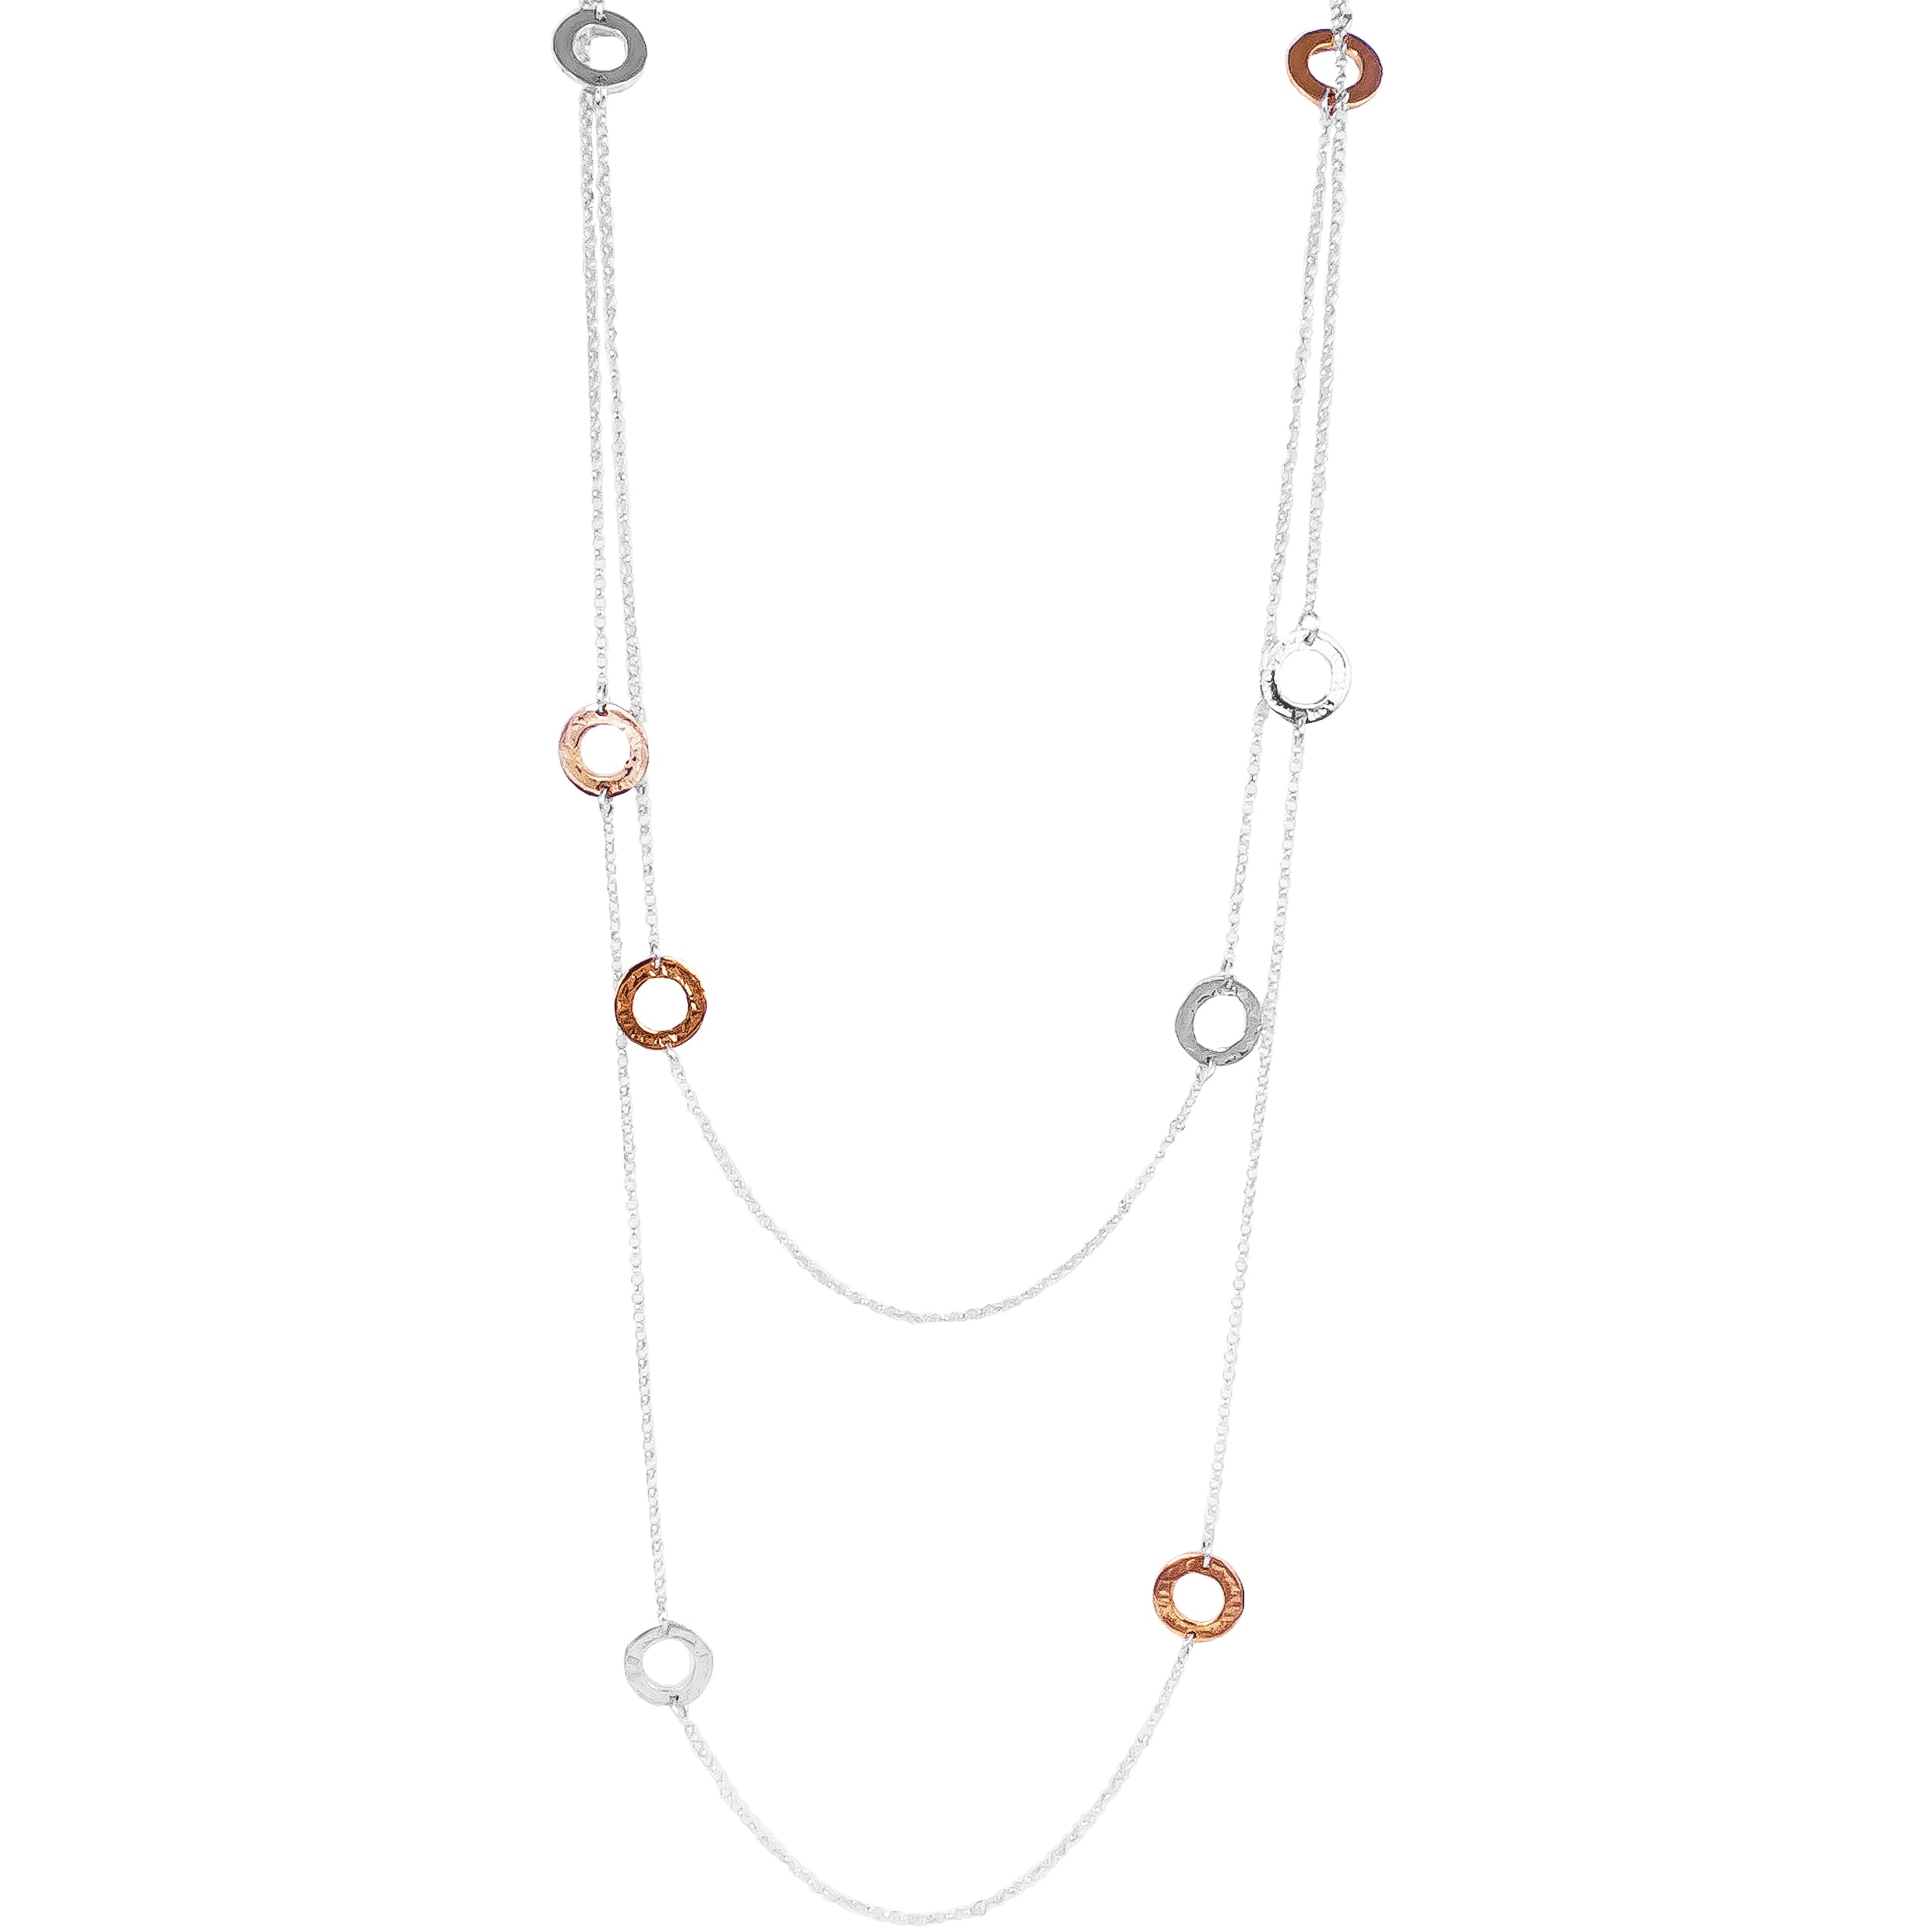 Chloe Necklace - Long | Hammered Silver & Rose Detail